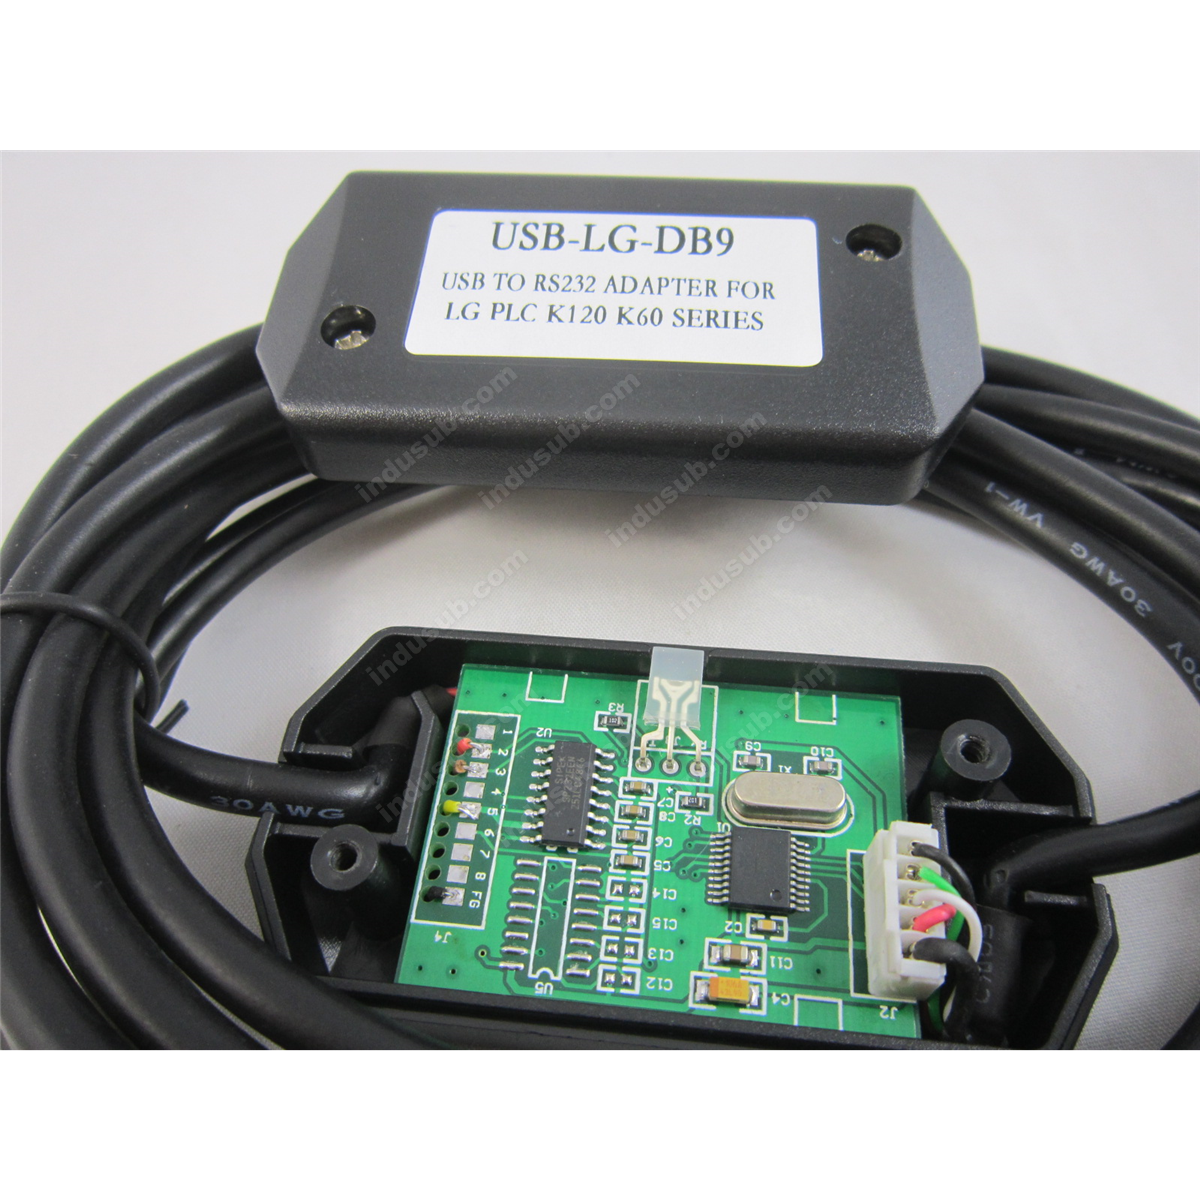 USB-LG Touch Screen Series RS232 Touch Screen PLC programming cable HMI Electronic Data Systems